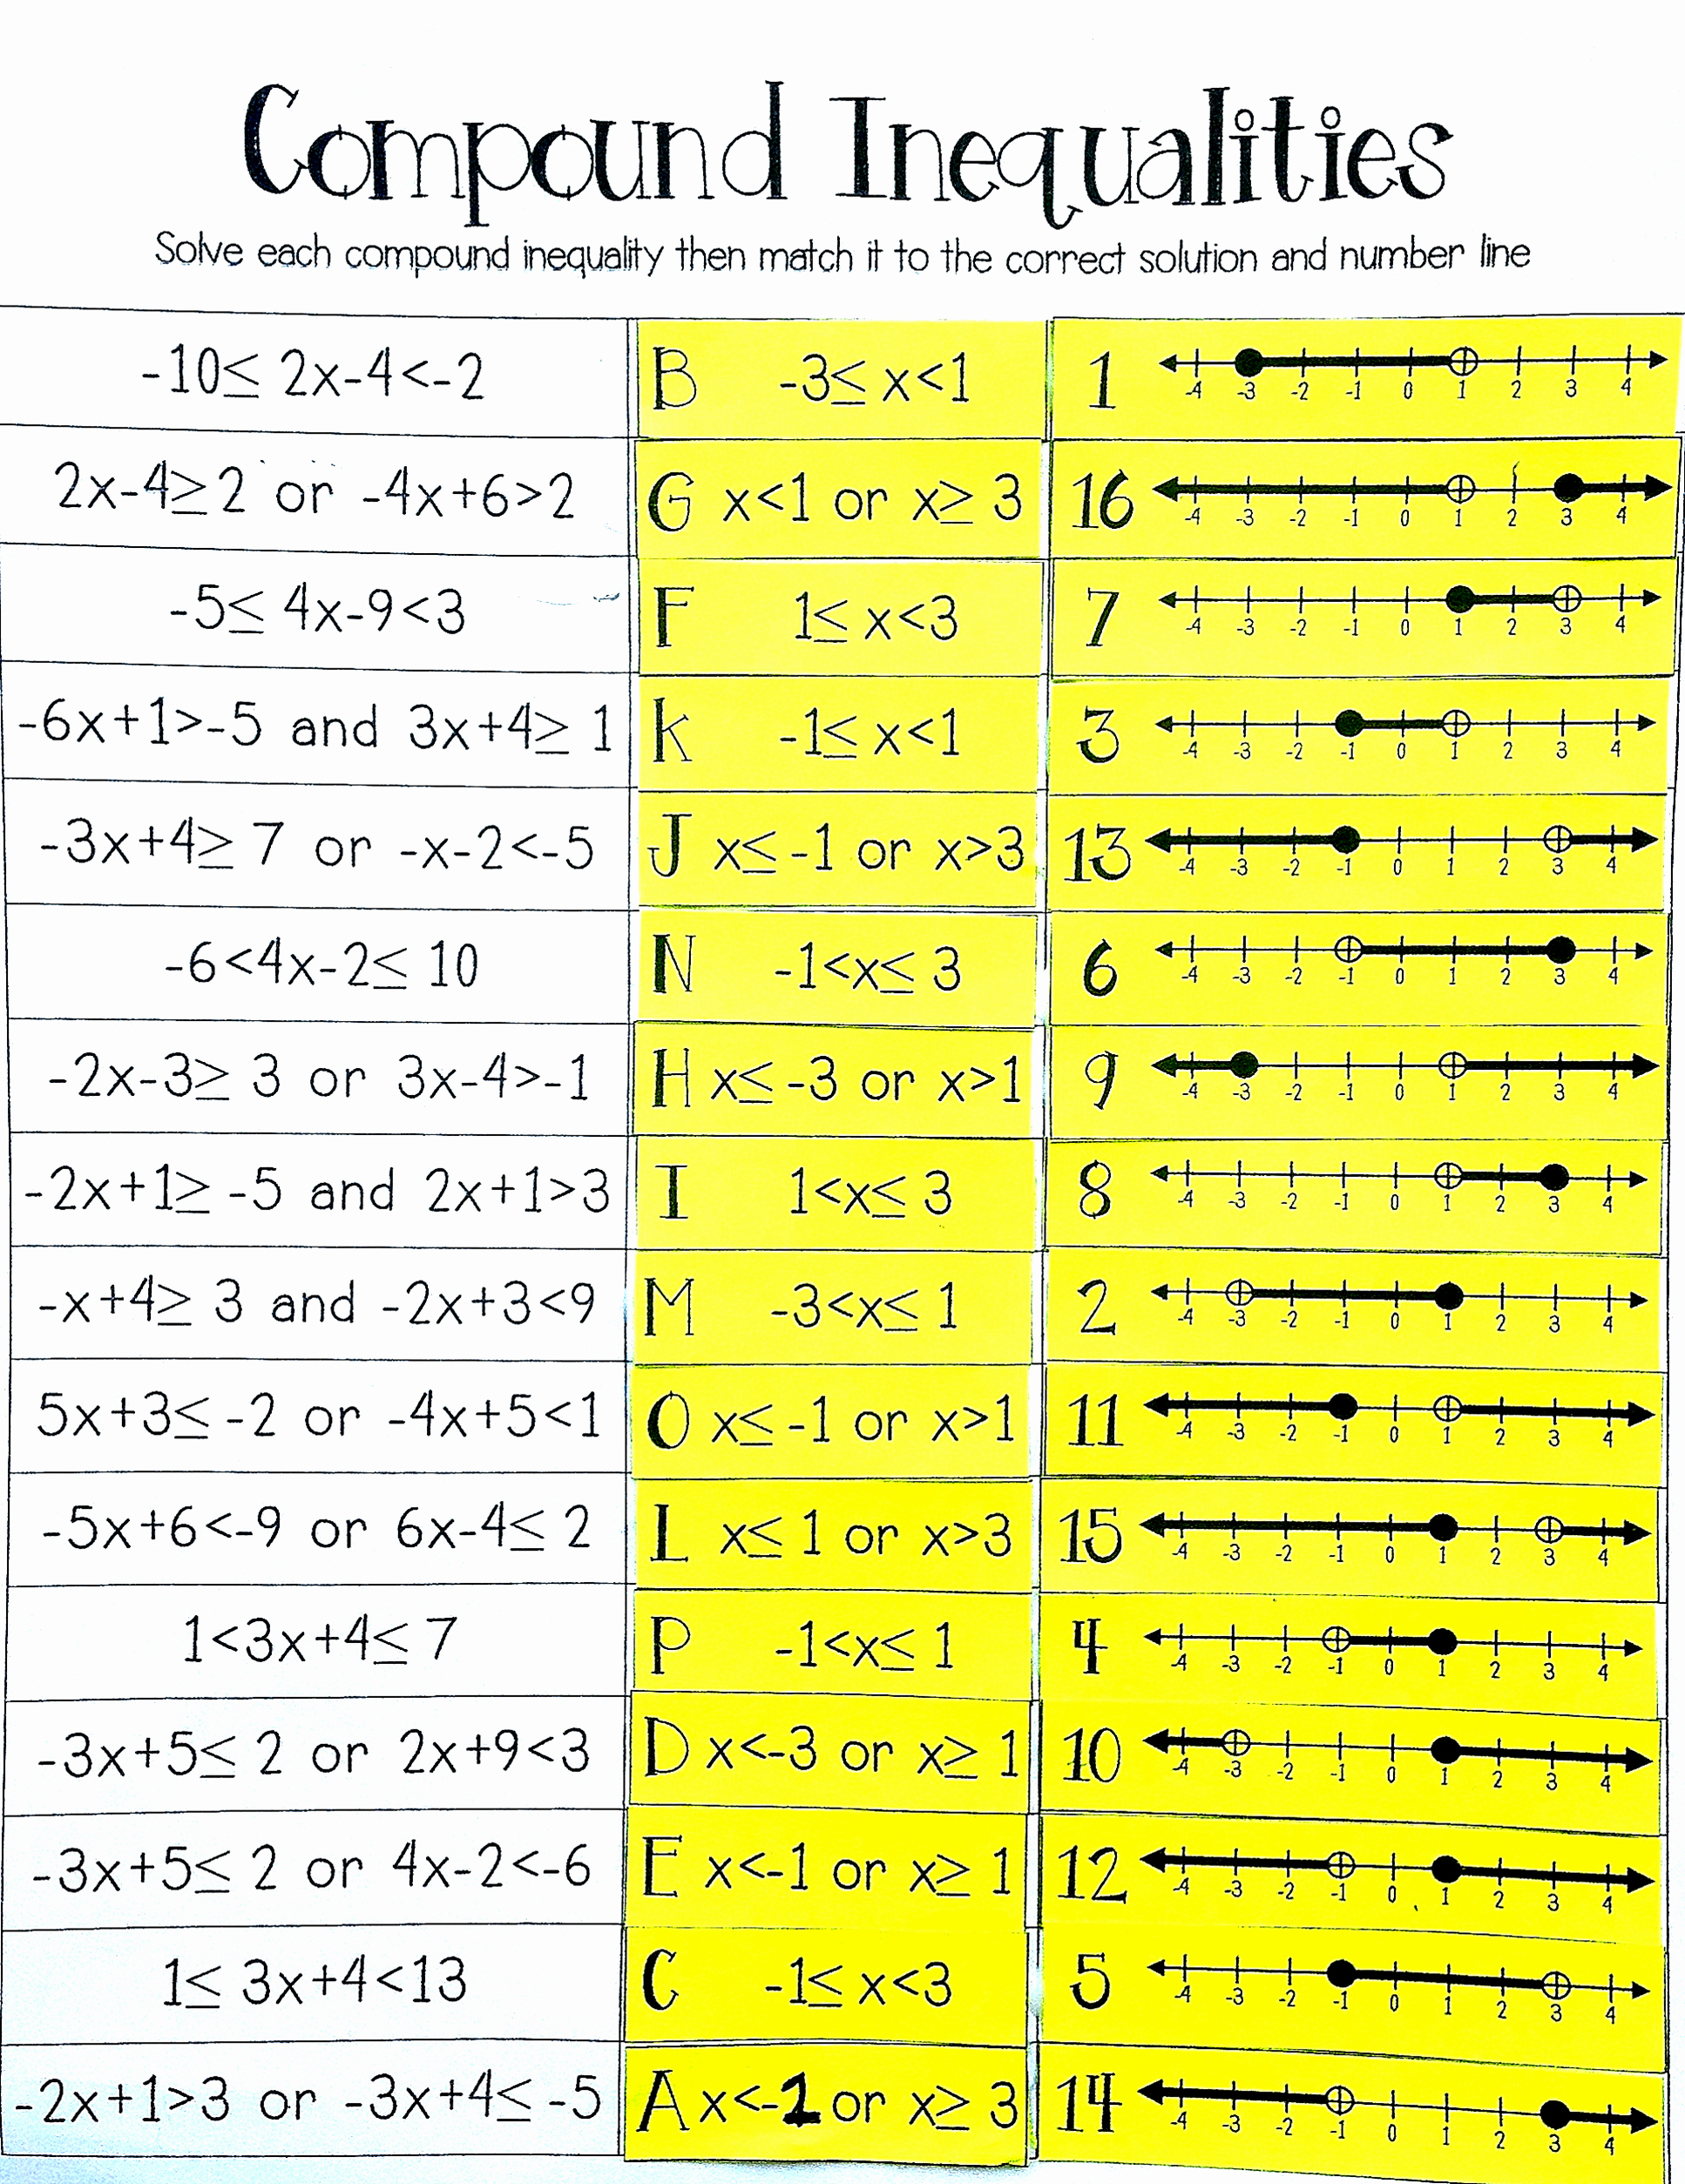 Solving Compound Inequalities Worksheet Best Of Pound Inequalities Card Match Activity